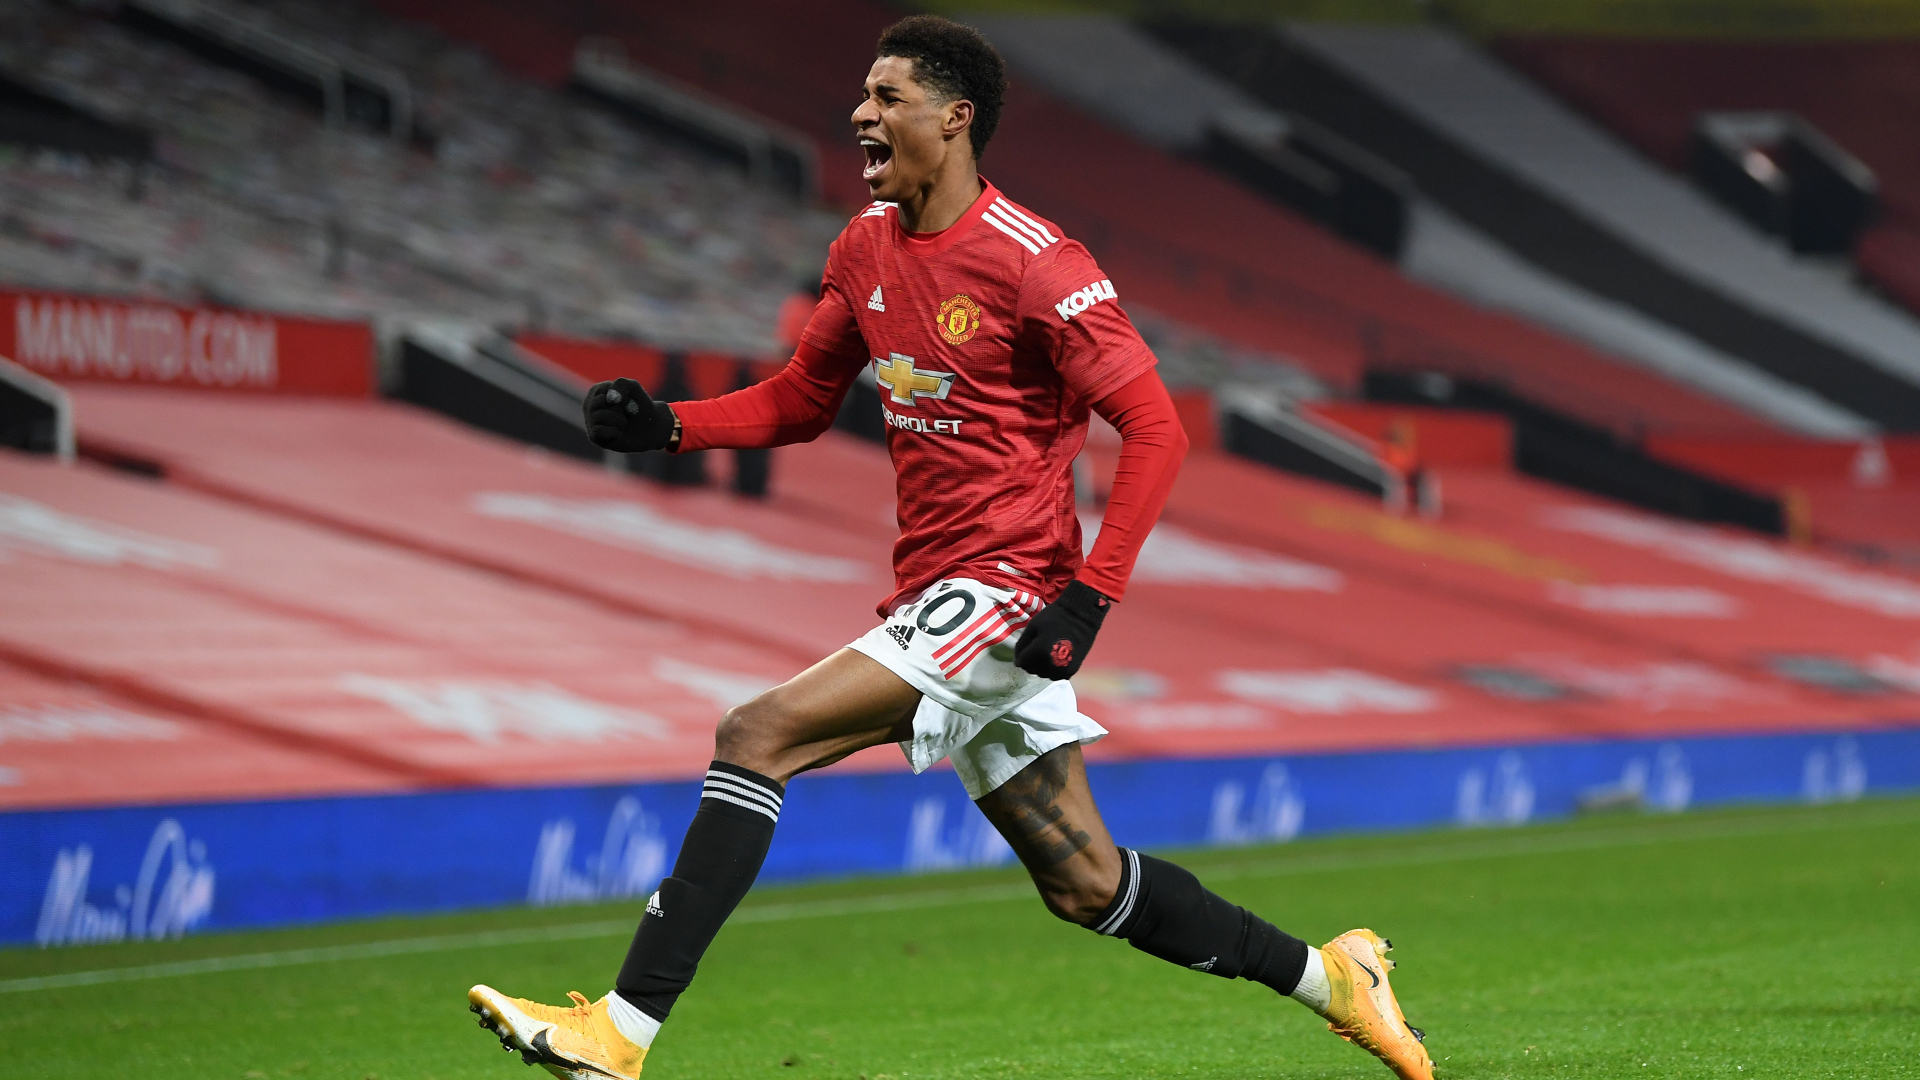 You survived 2020′ – Man Utd star Rashford offers message of hope heading into new year